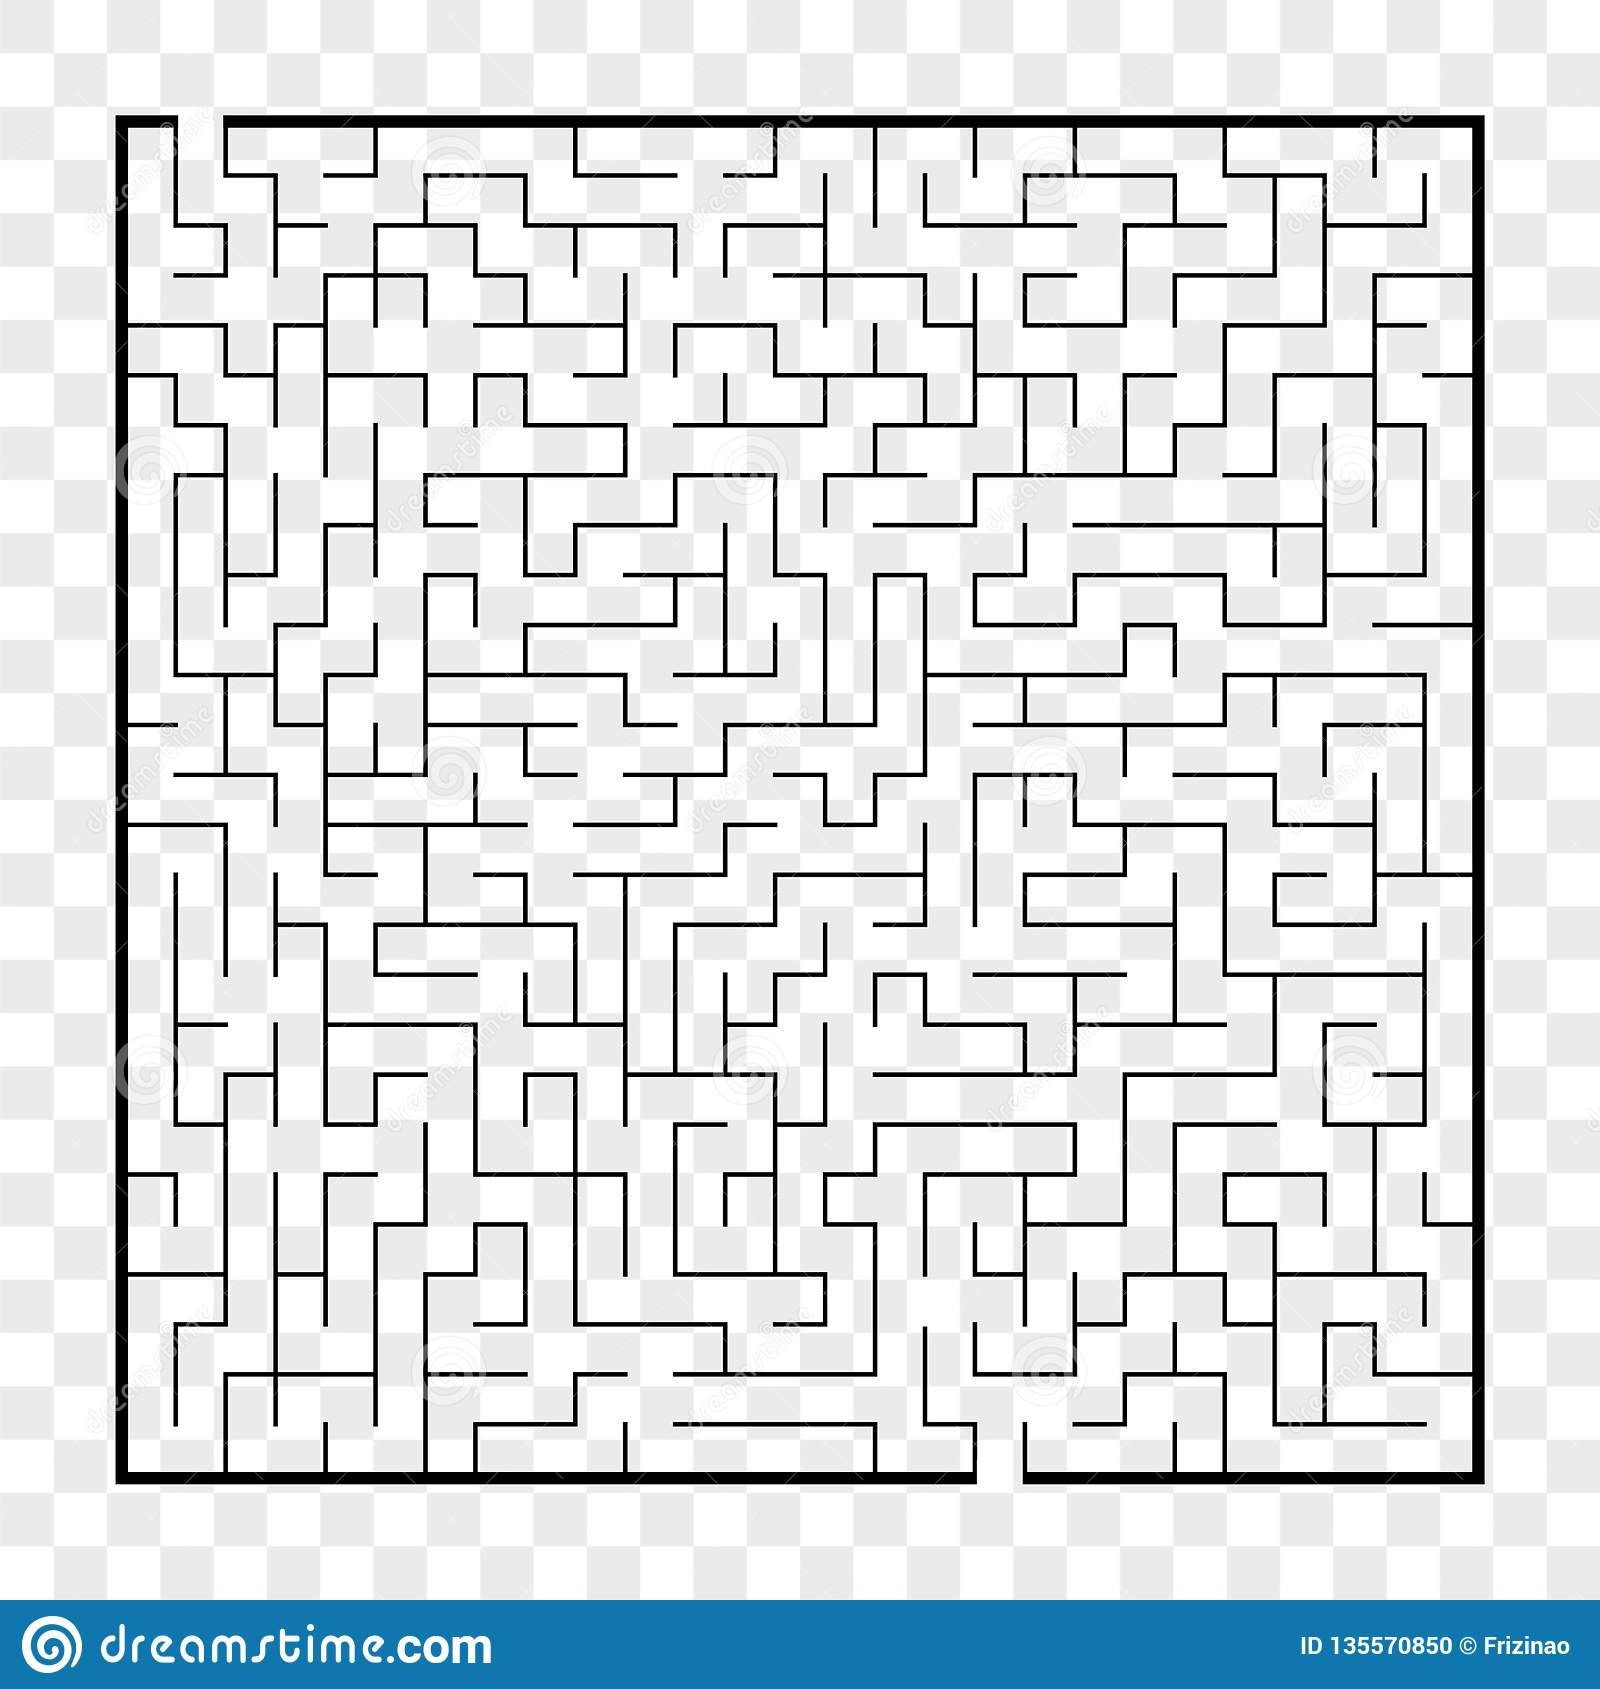 Abstract Square Maze  Game For Kids  Puzzle For Children Labyrinth